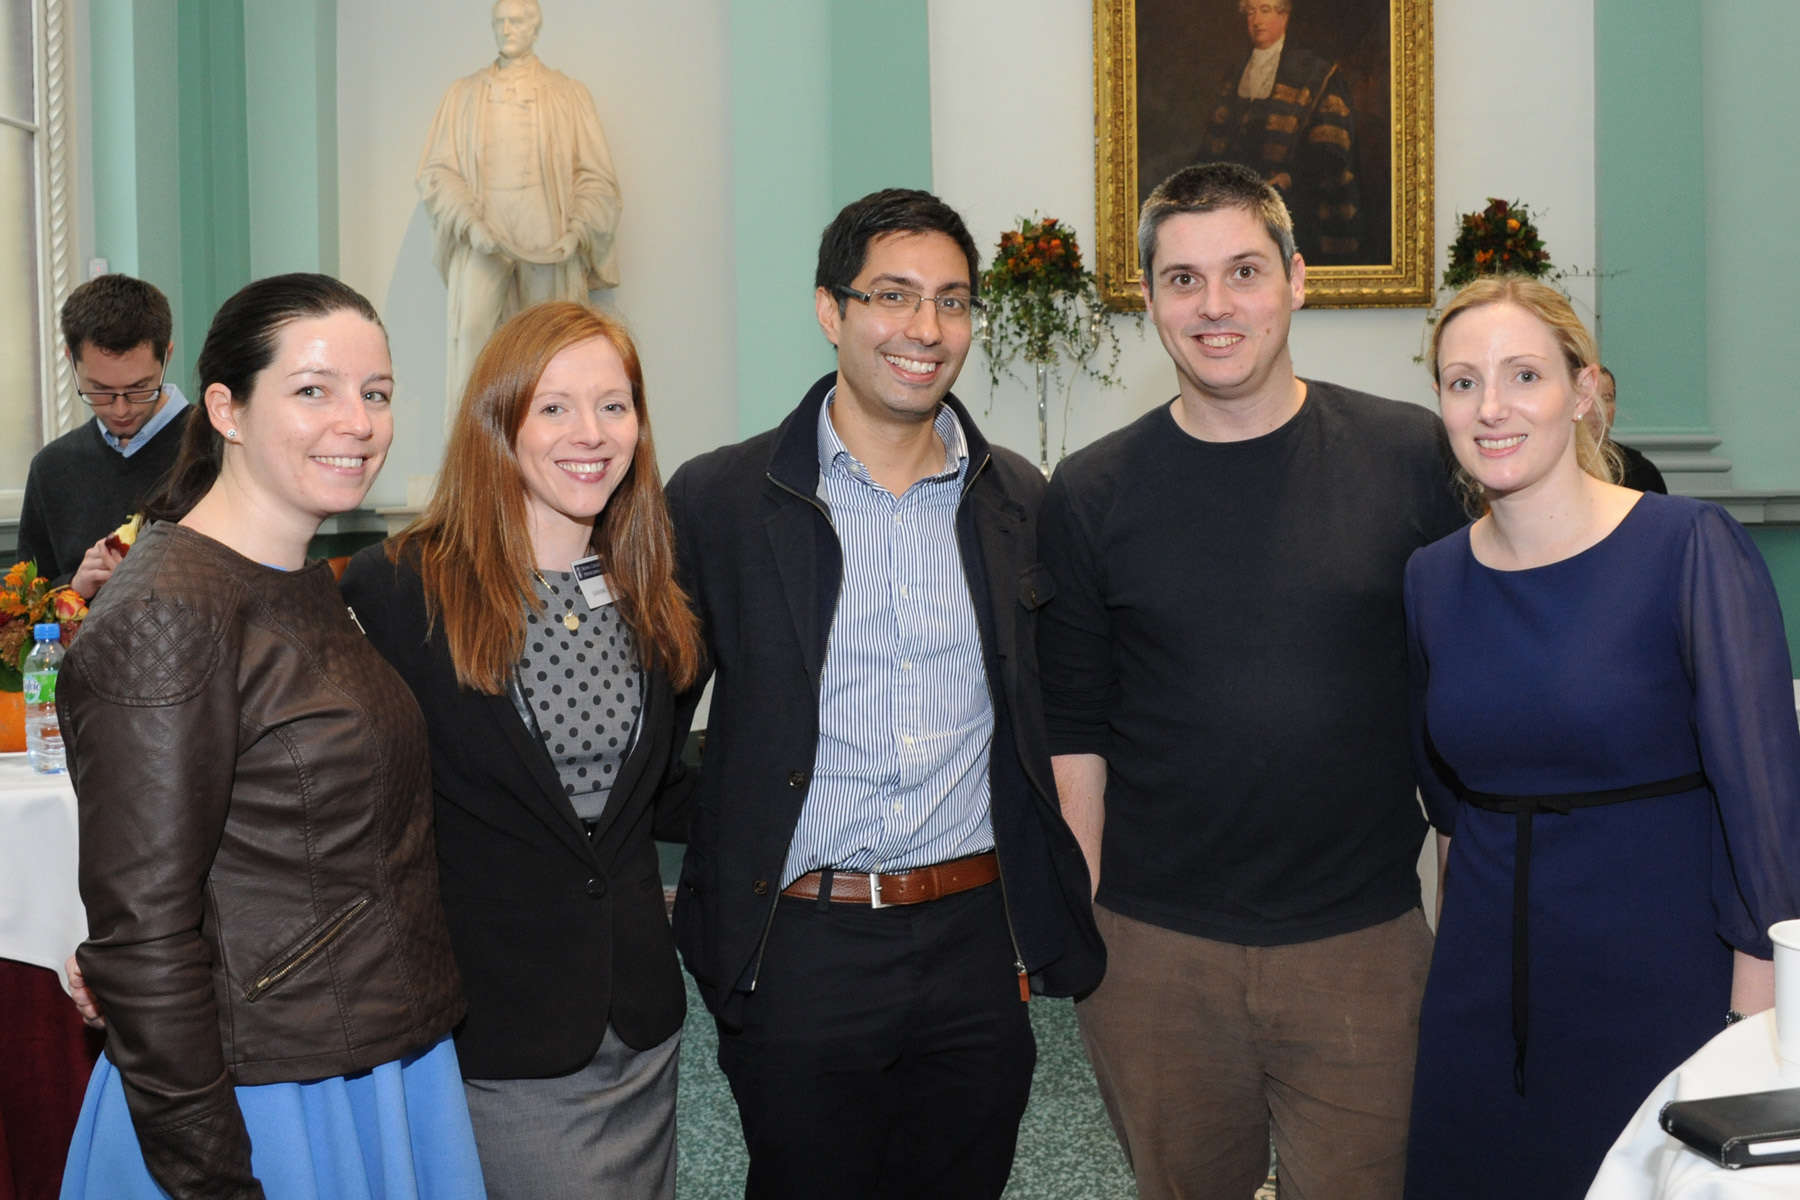 RCPI Trainees' Committee